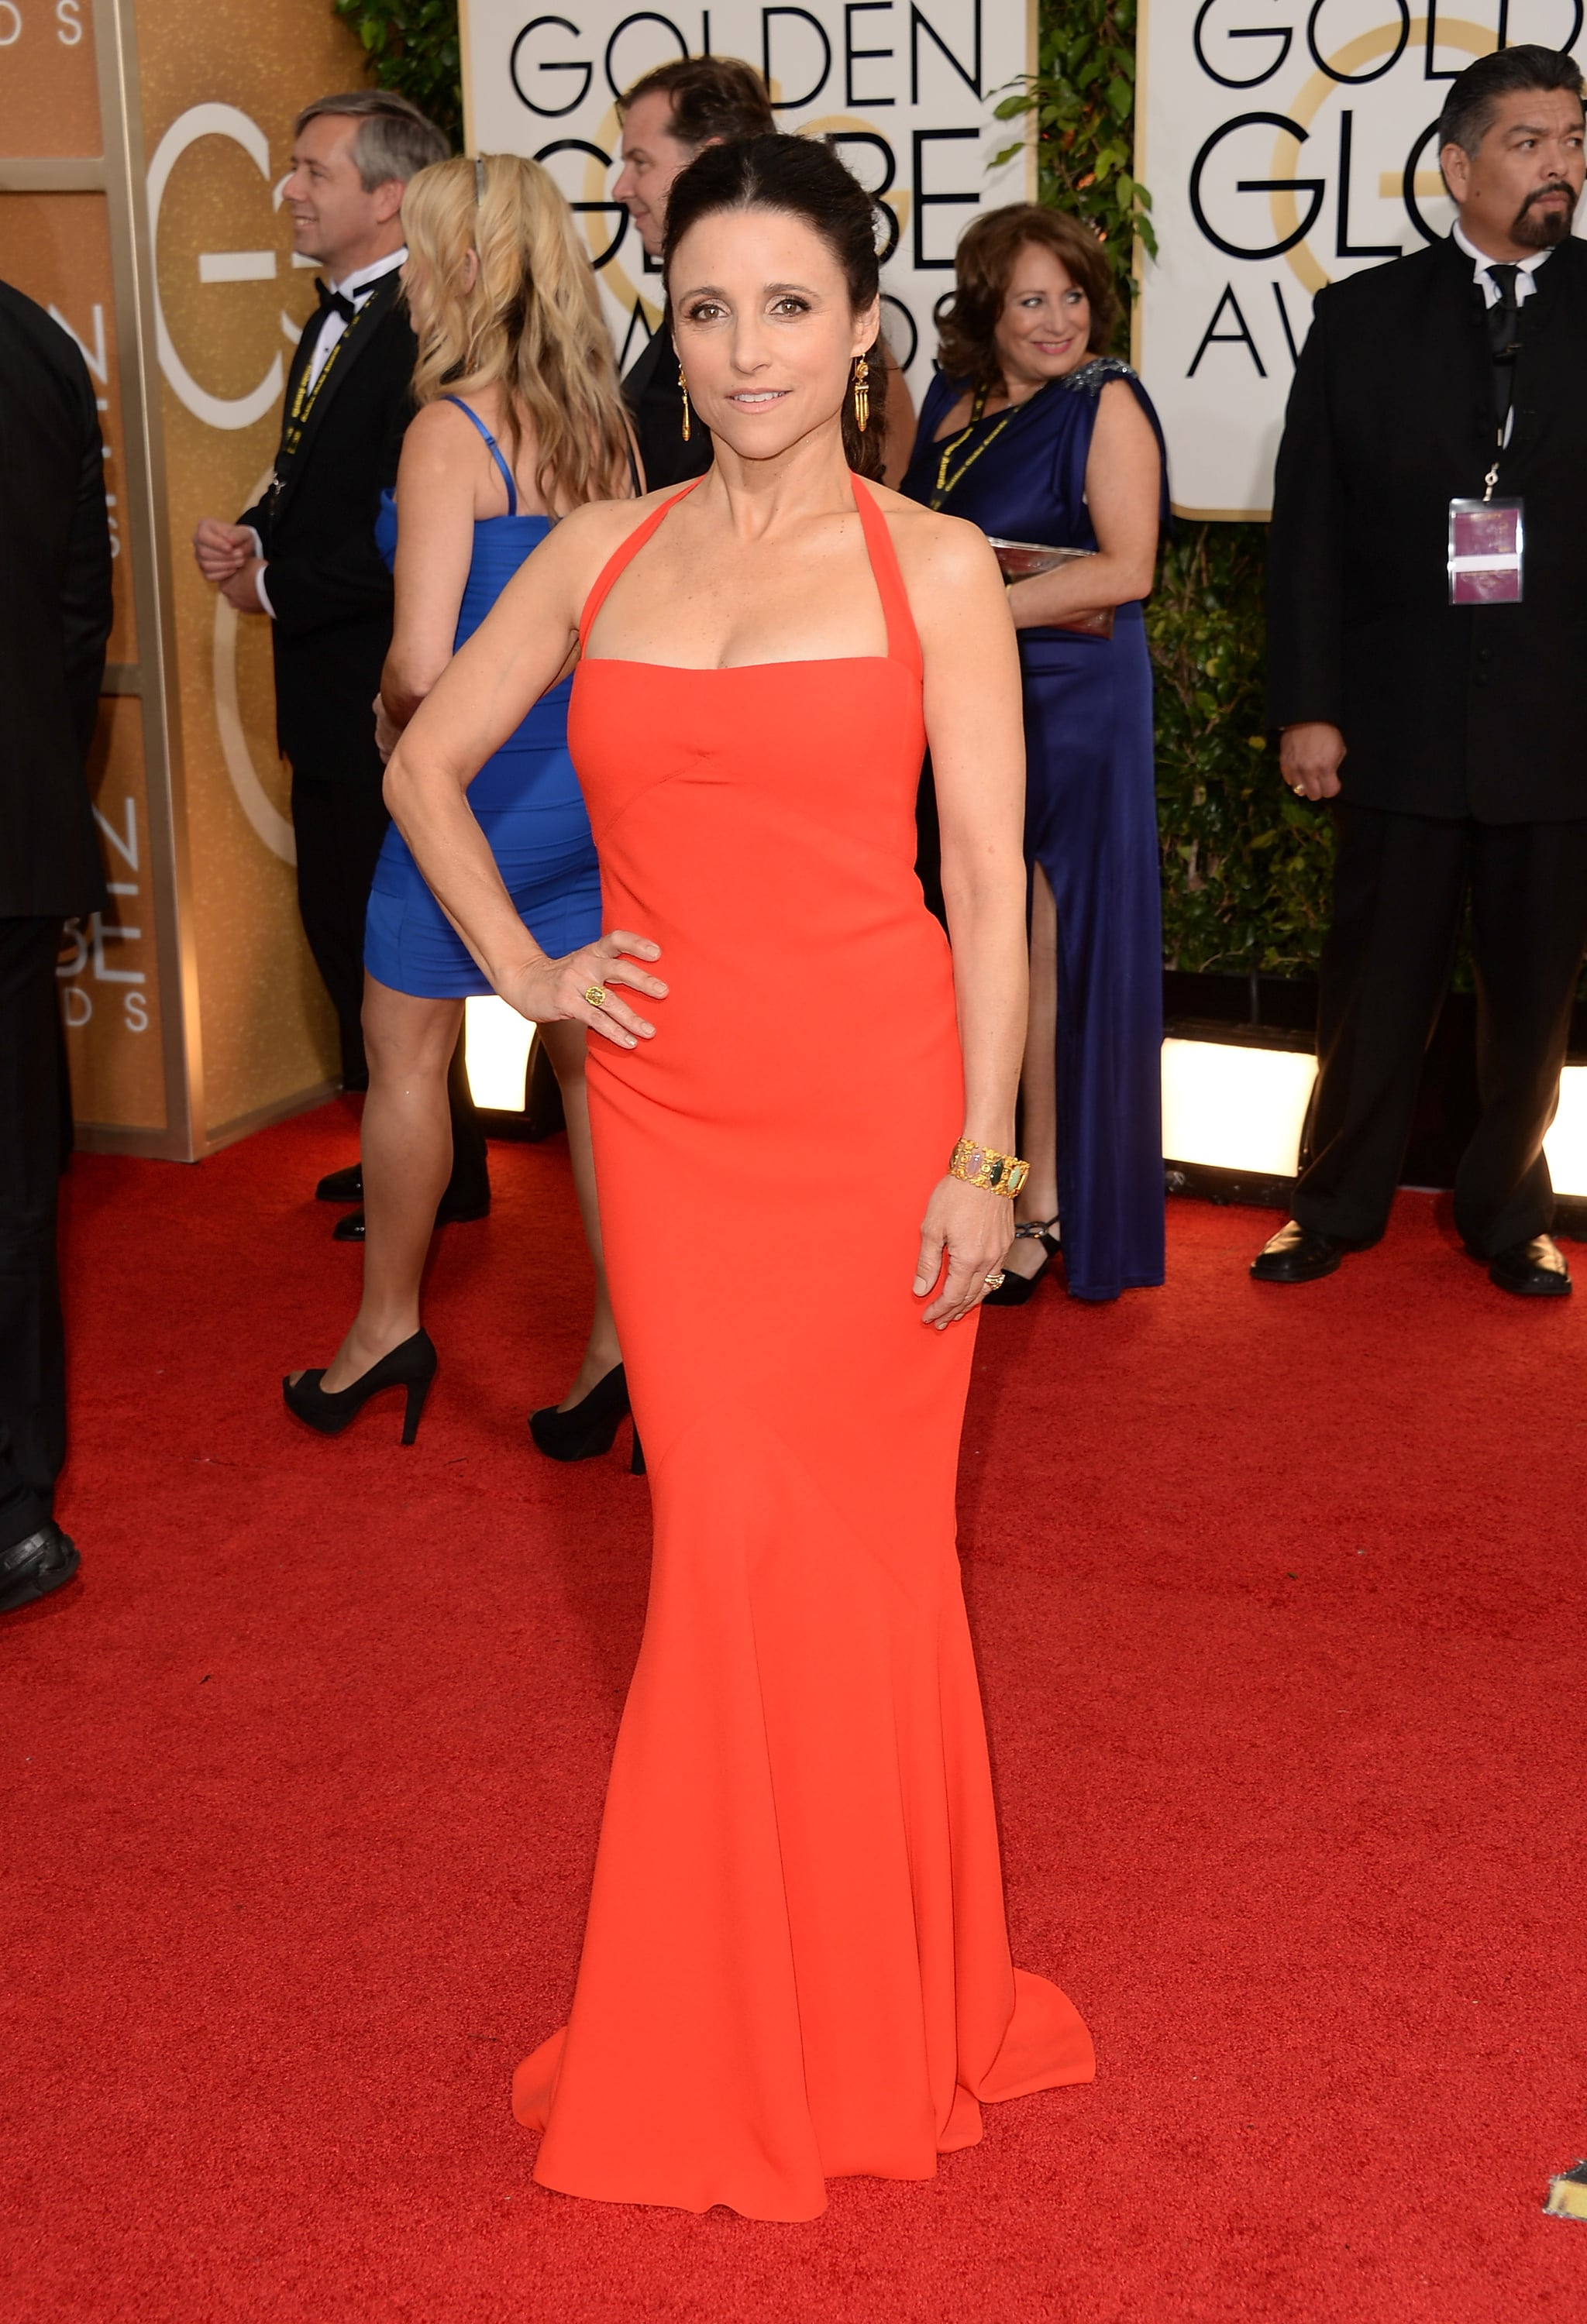 Julia Louis-Dreyfus at the Golden Globes in Narciso Rodriguez